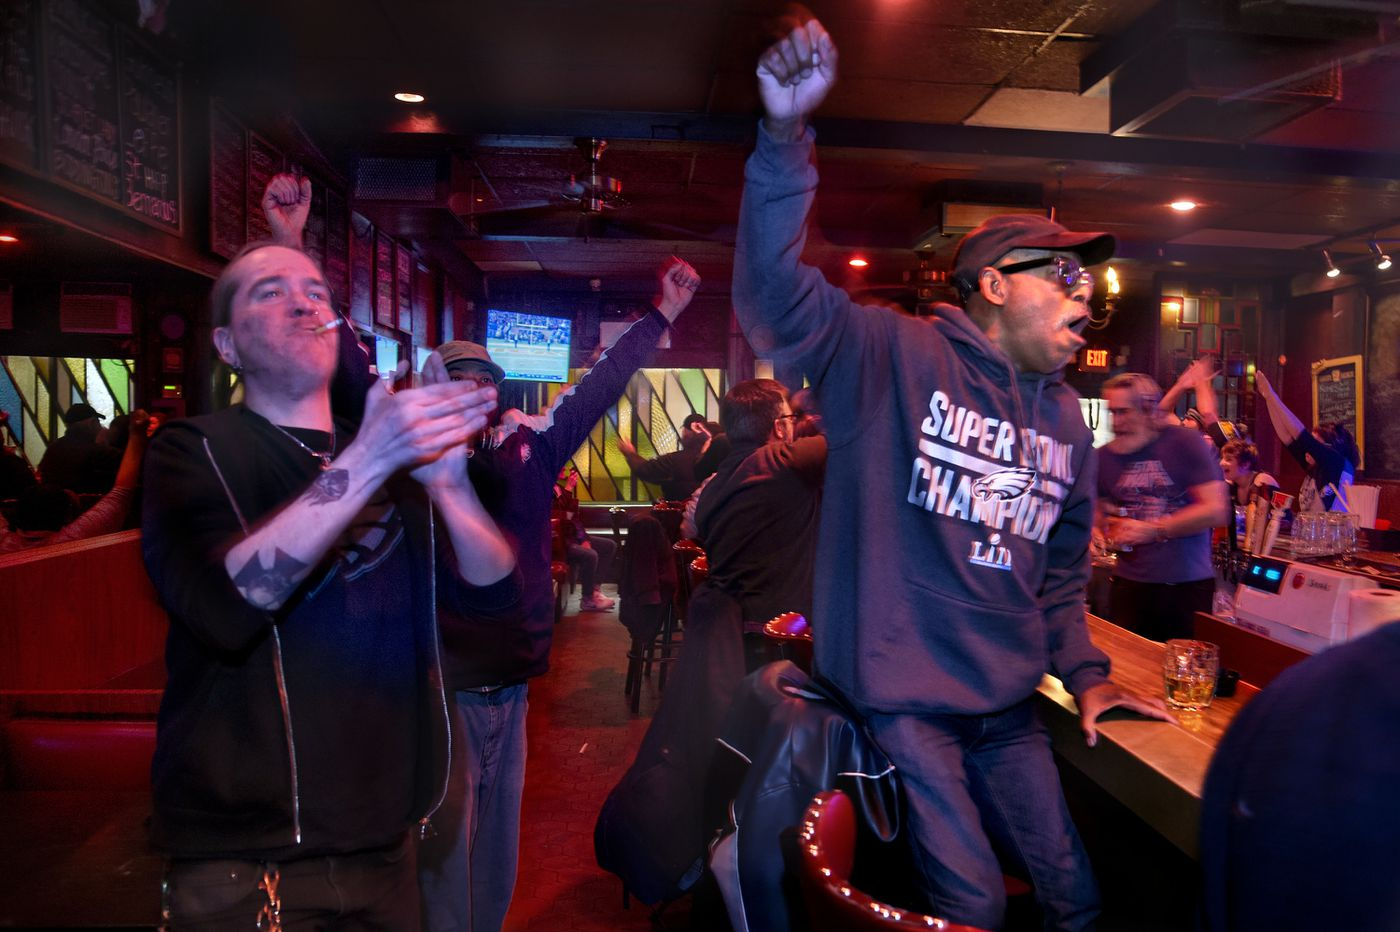 Subdued atmosphere at McGlinchey's Bar as Eagles pull off a squeaker